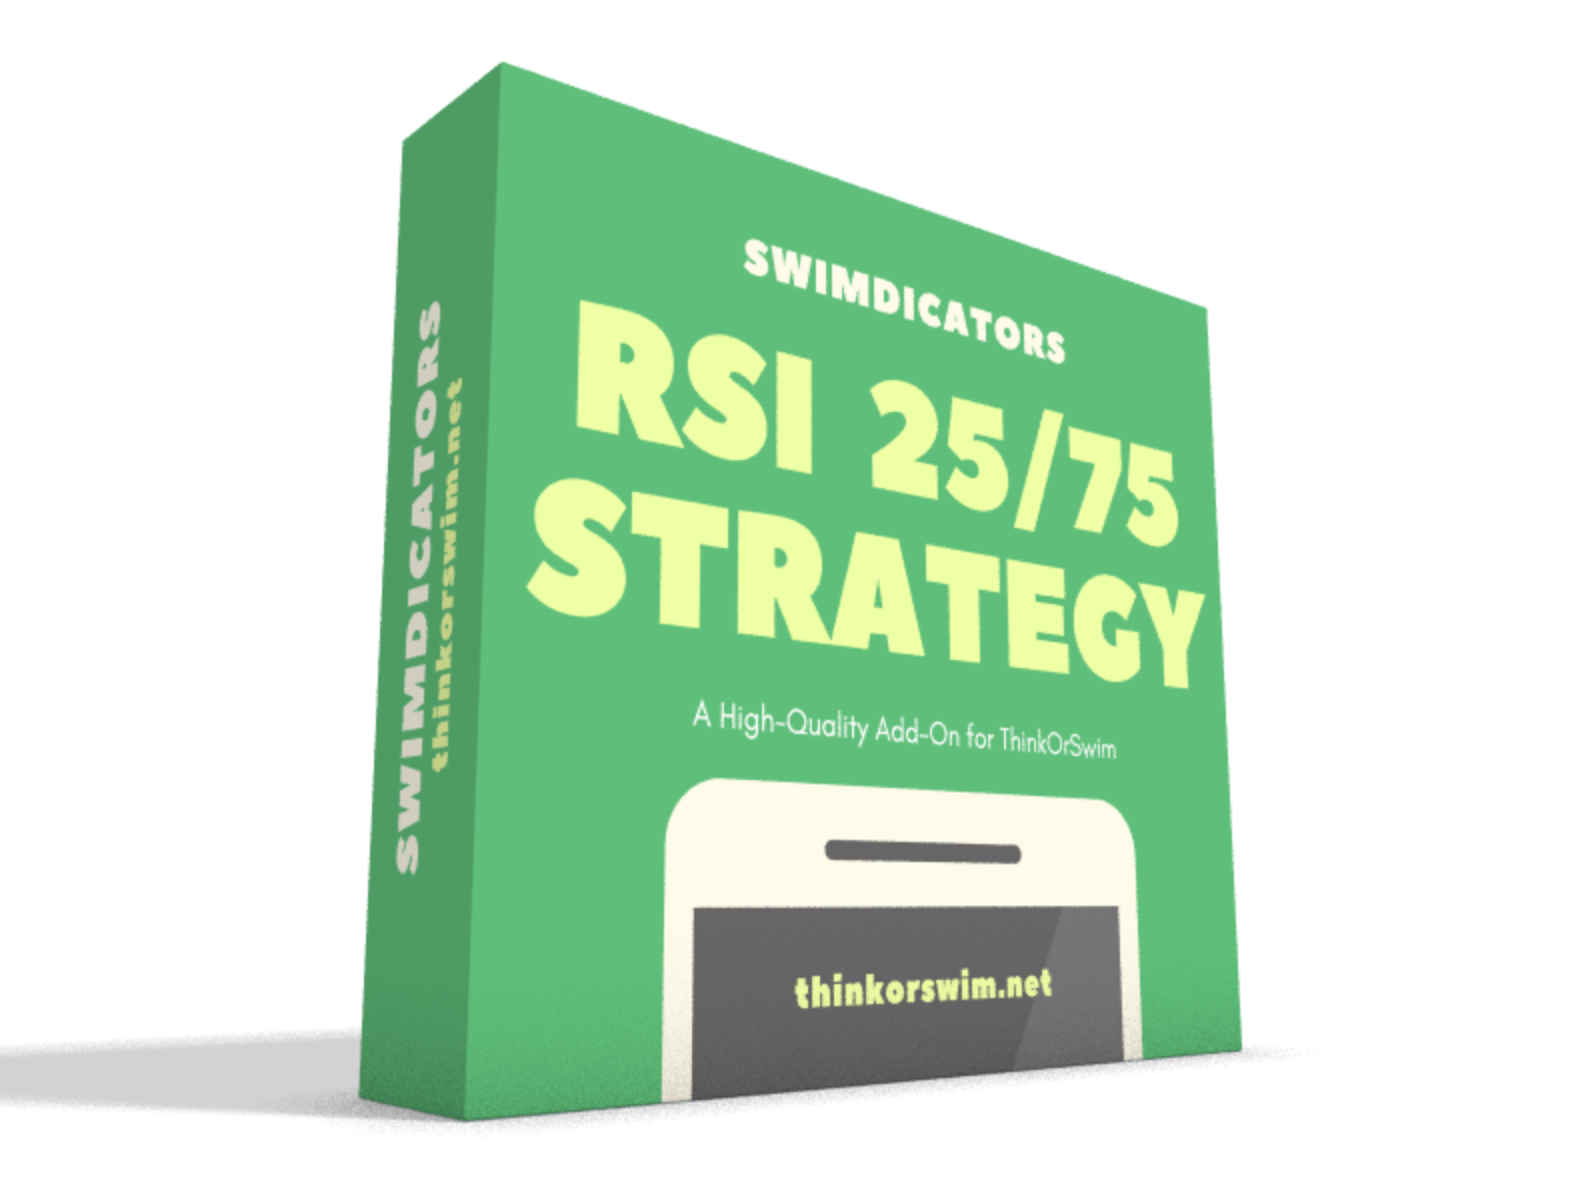 Rsi trading strategies